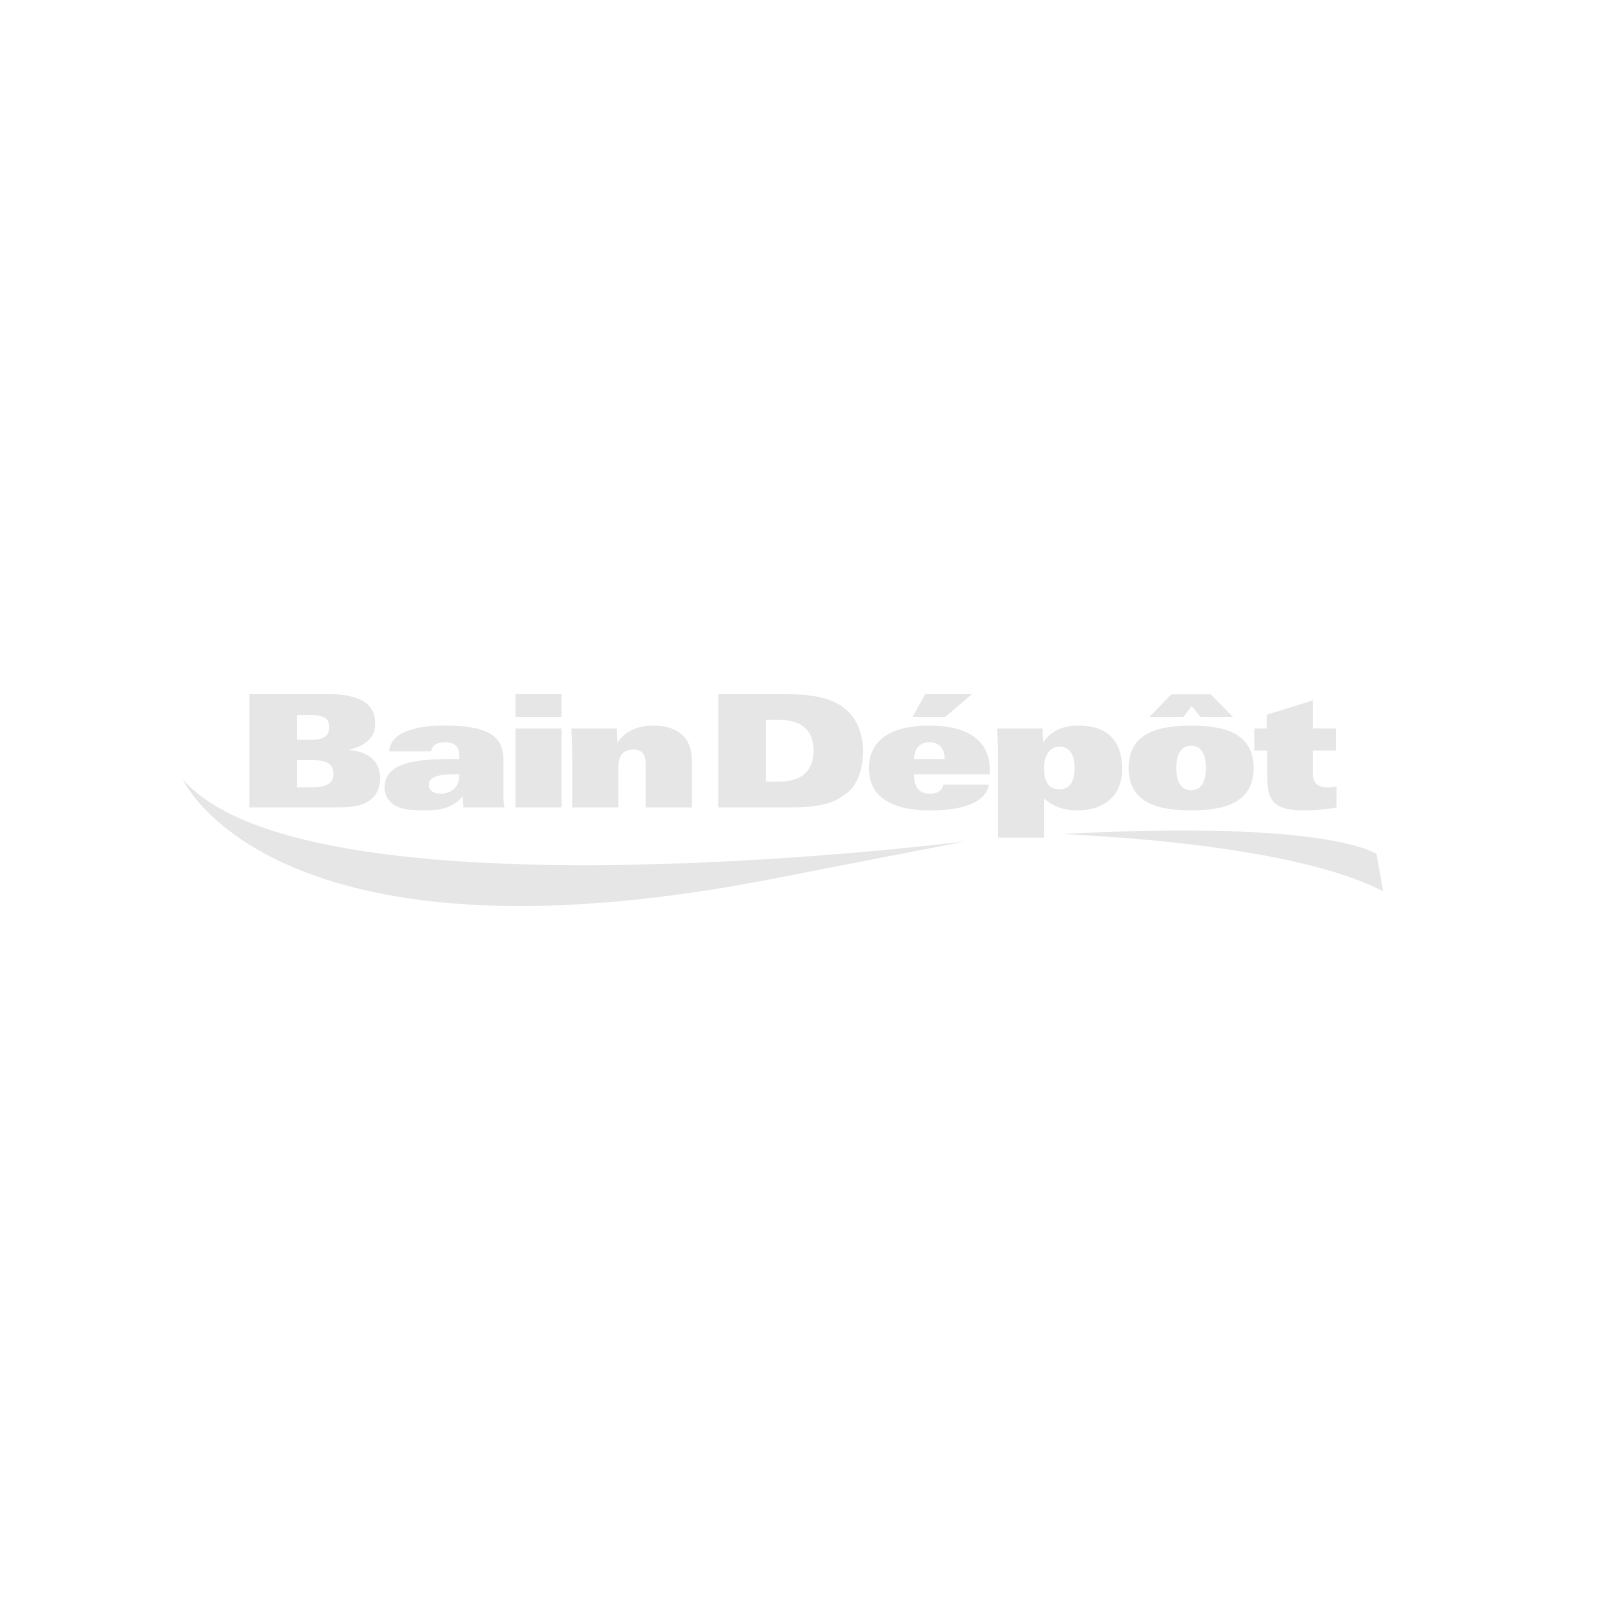 3-piece roman bathtub faucet with waterfall effect